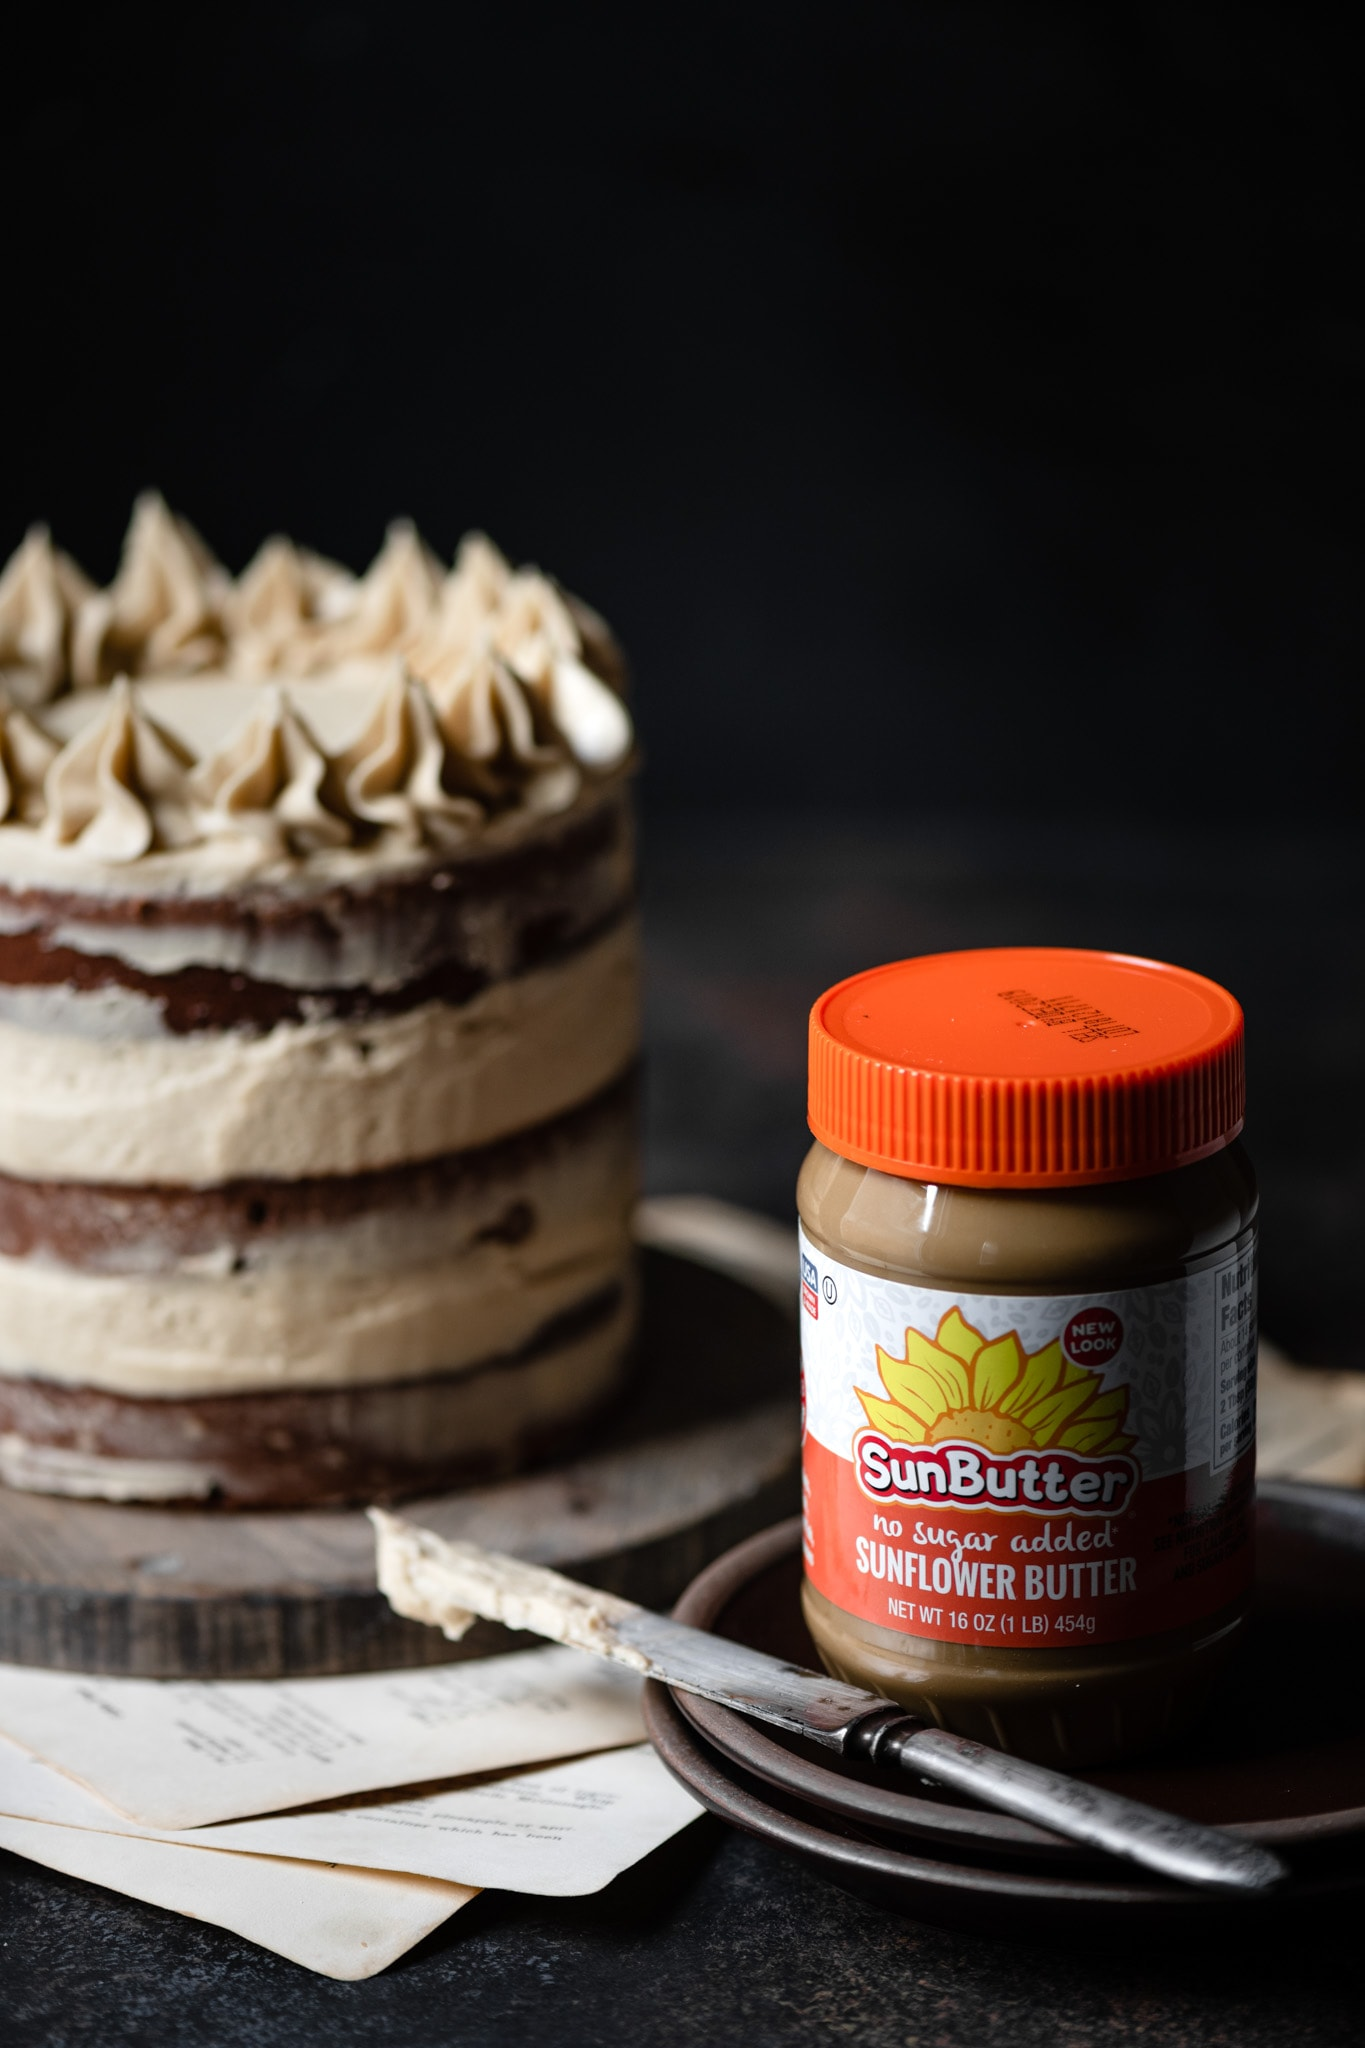 Chocolate Sunflower cake with jar of SunButter.